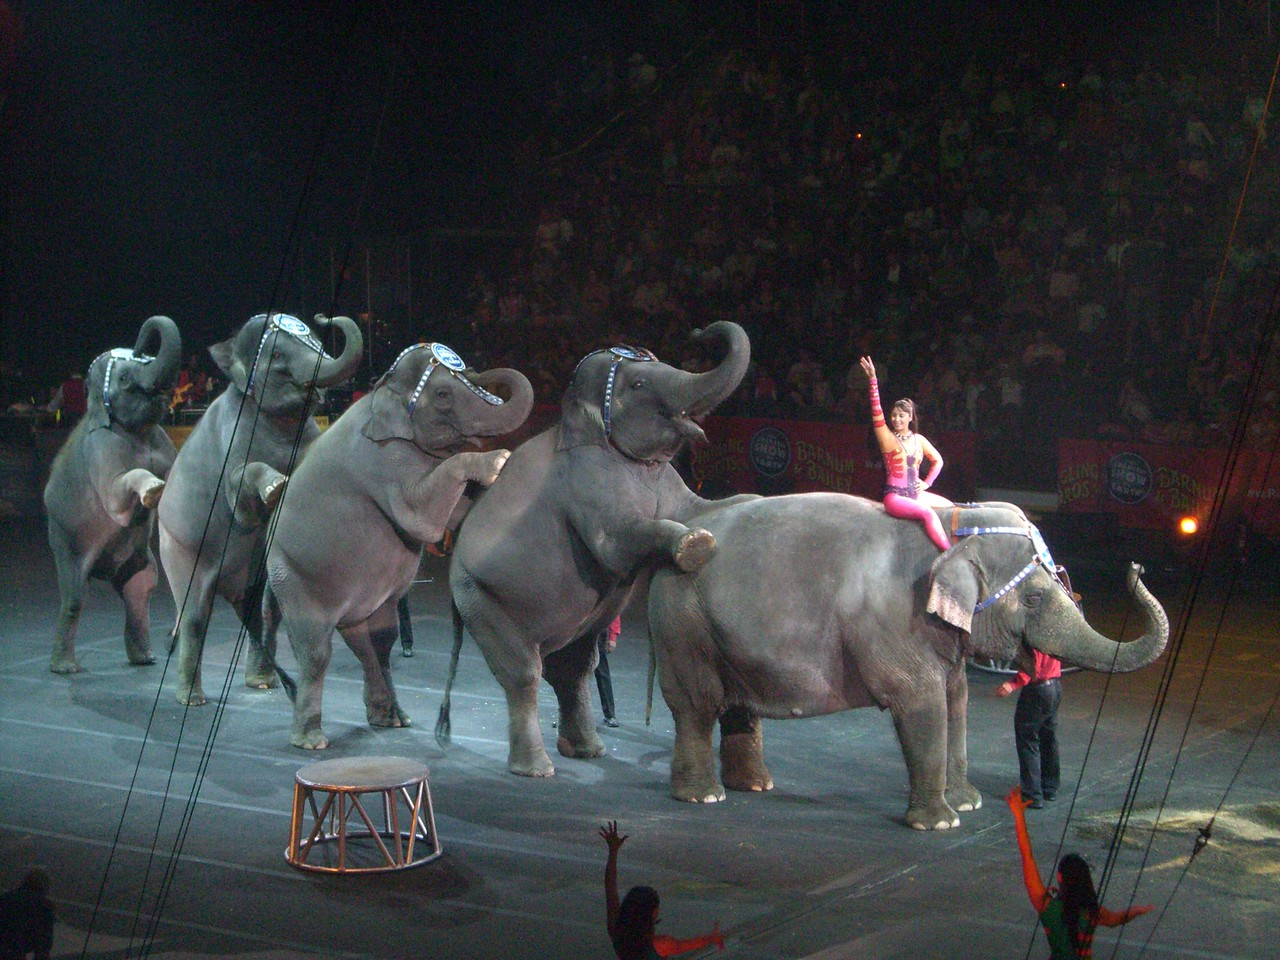 Man, those elephants can poop! Circus - 9.7.2008